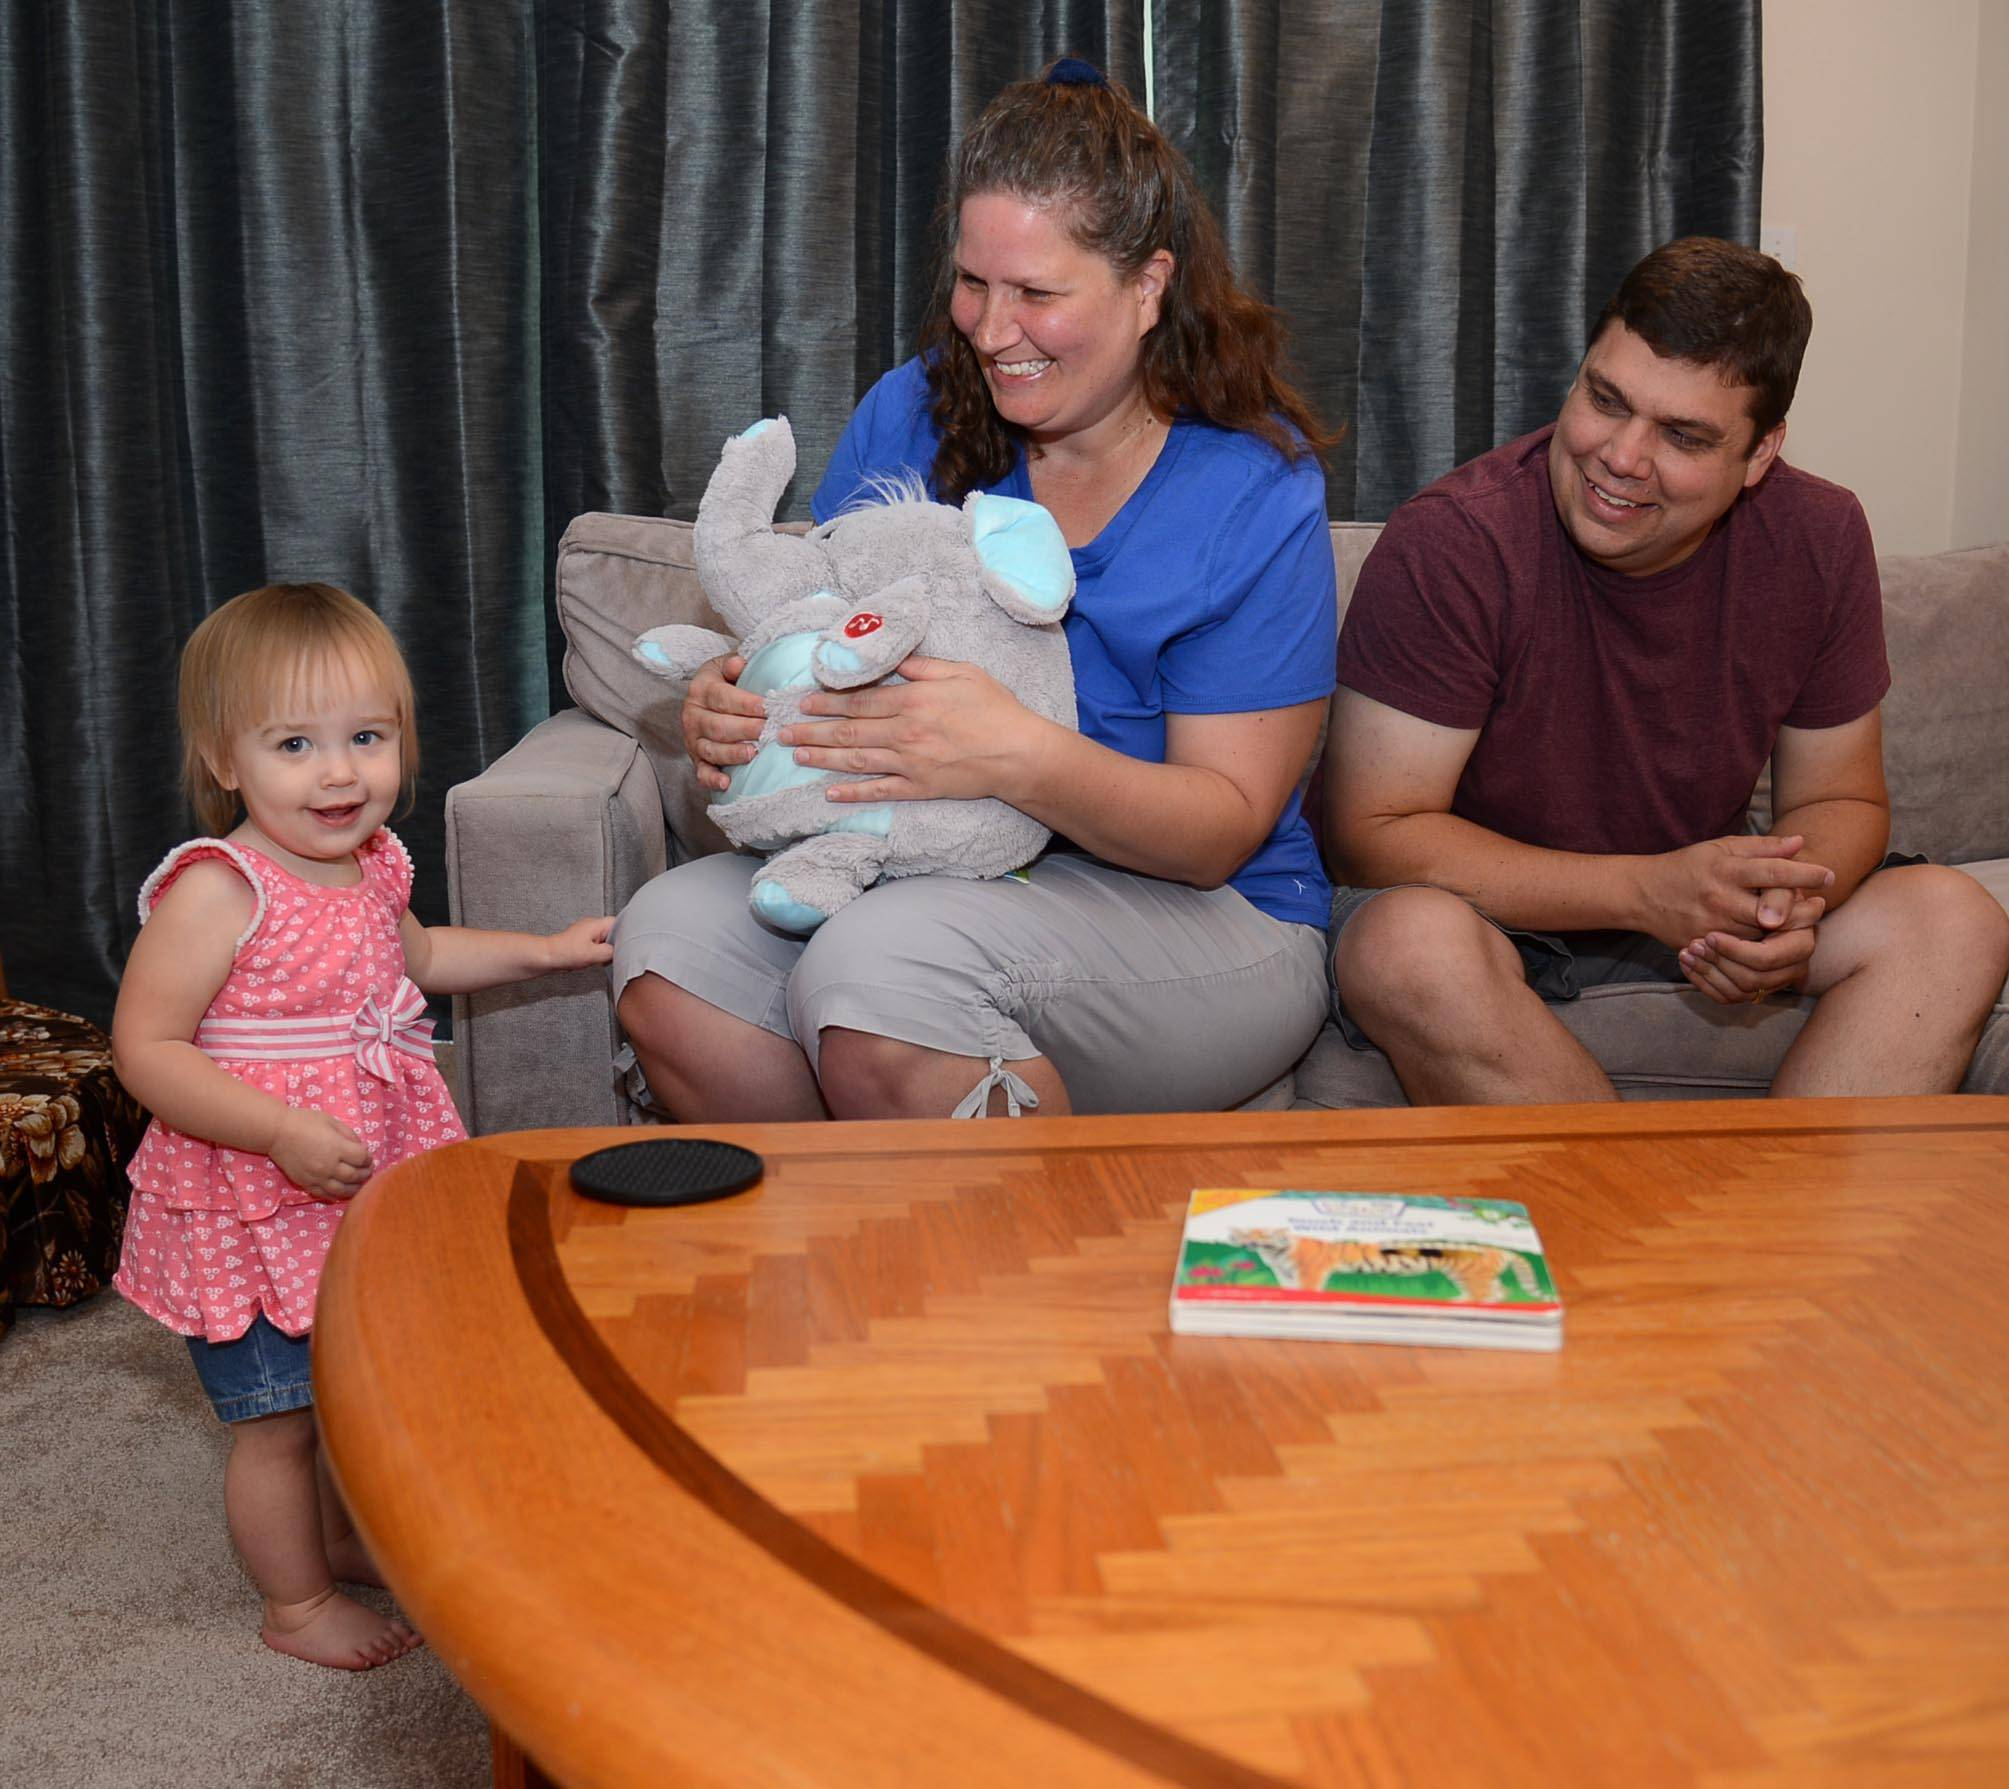 Safe haven baby ends St. Charles couple's 8-year wait to adopt